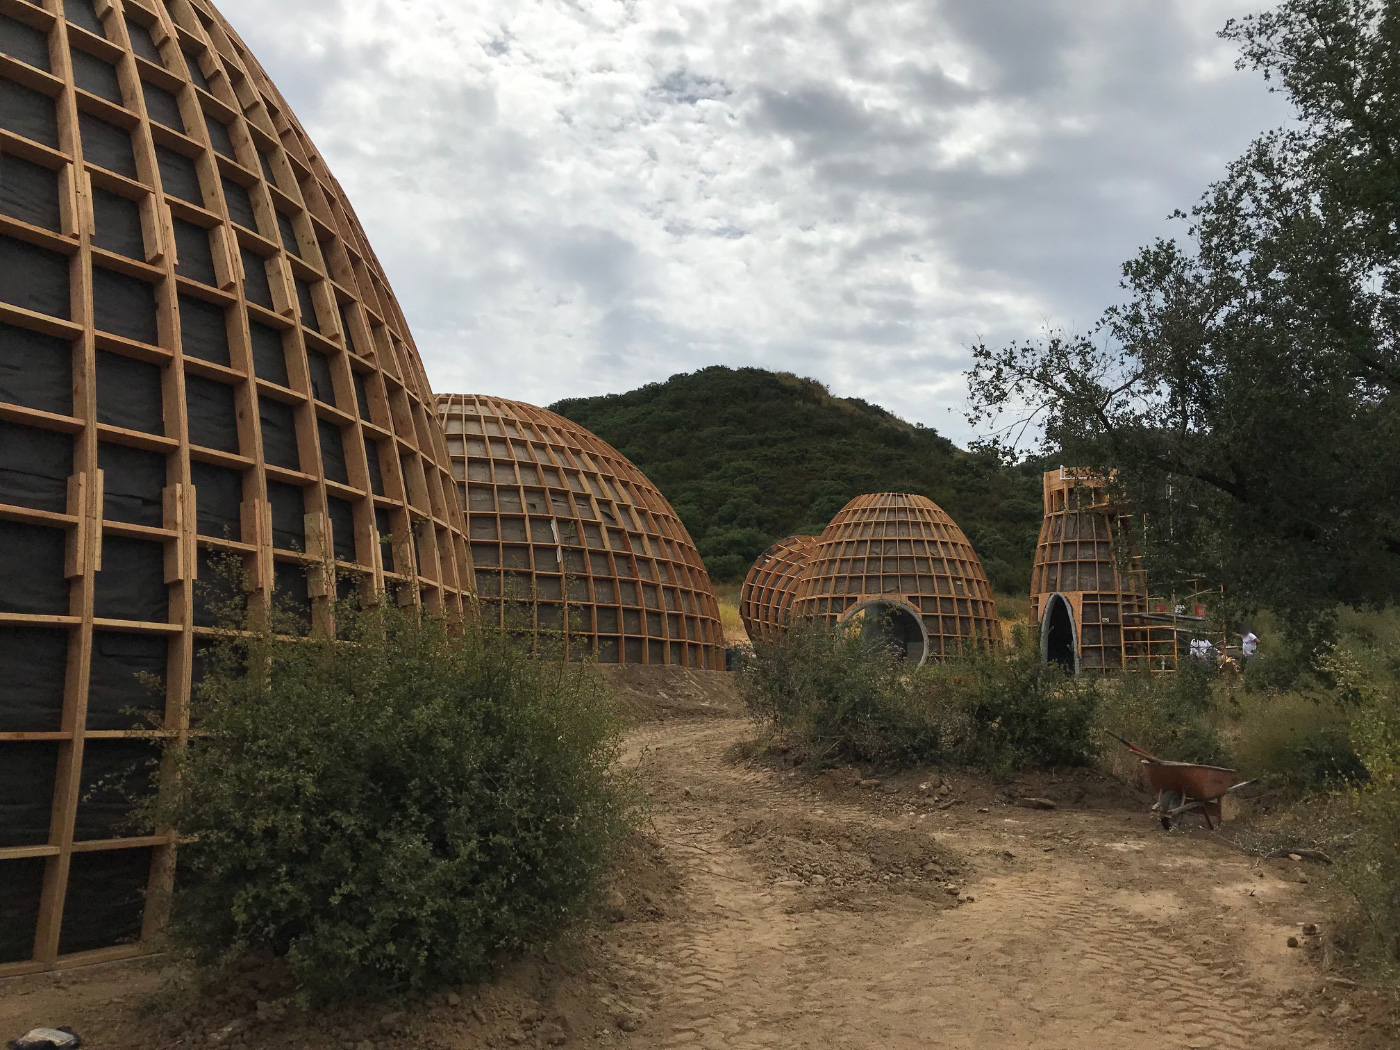 Photos of the Kanye West-designed wooden dome homes